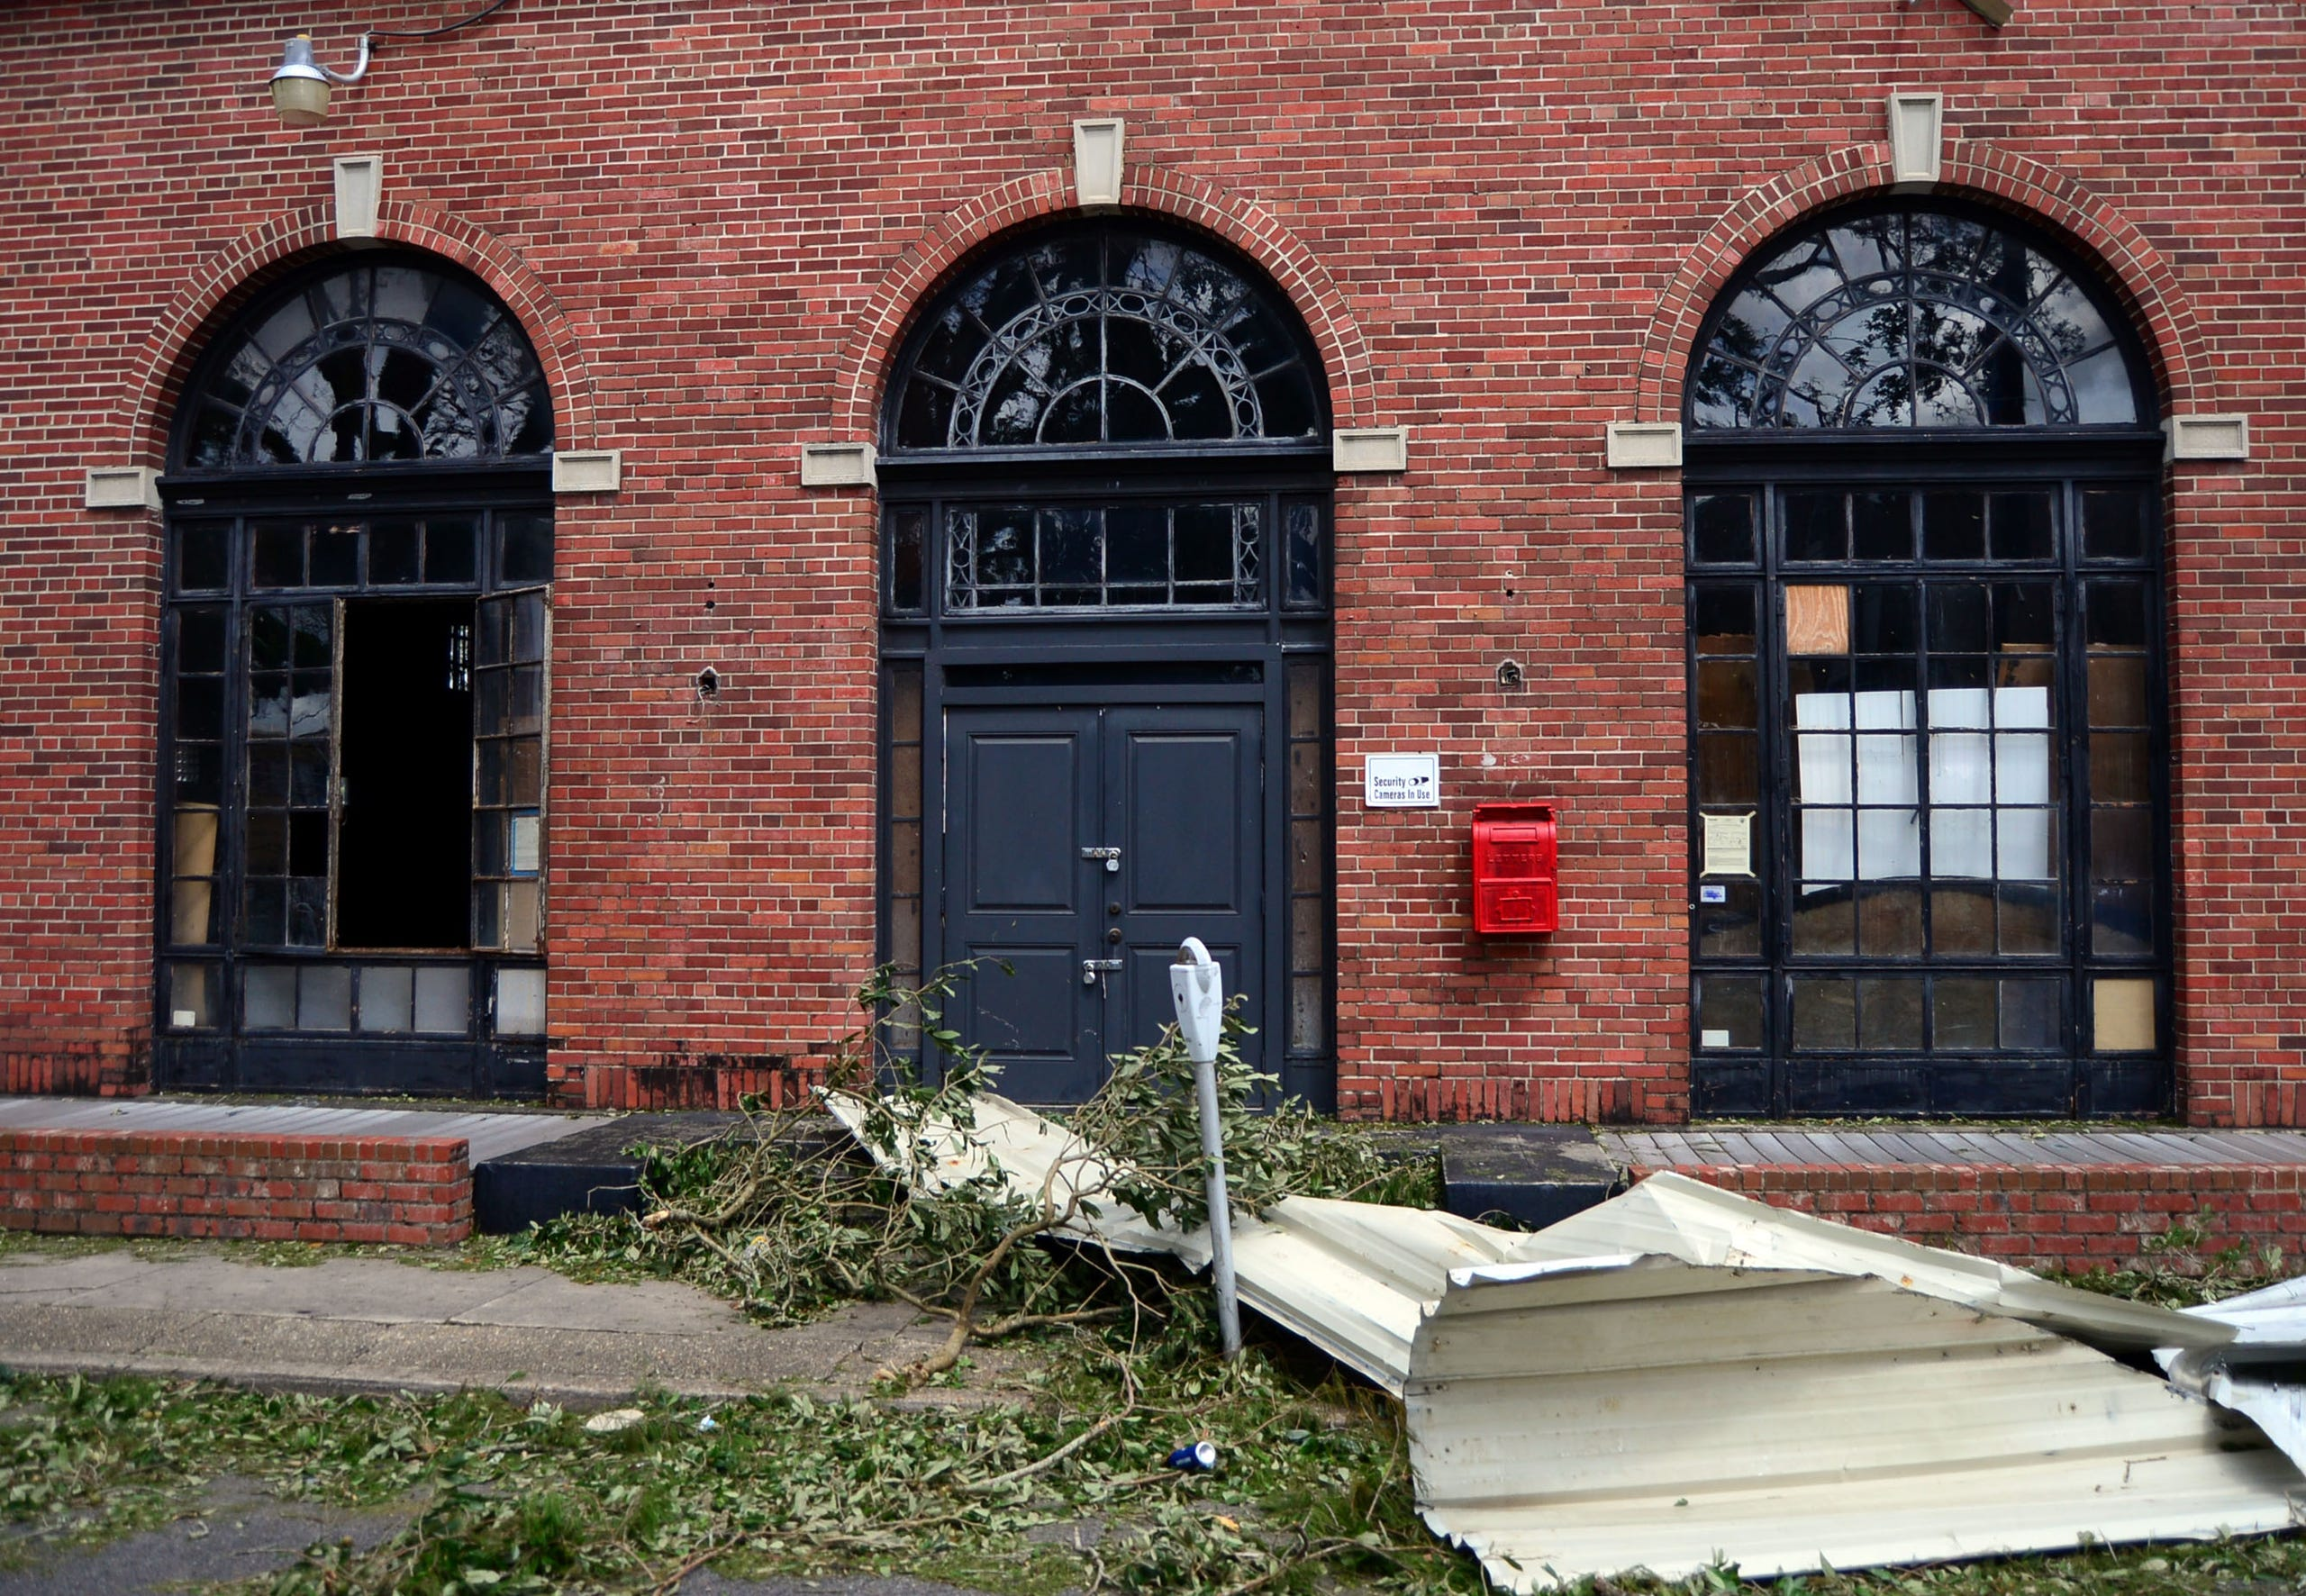 Storm debris is seen outside a building in Houma, La., on Monday, Aug. 30, 2021.